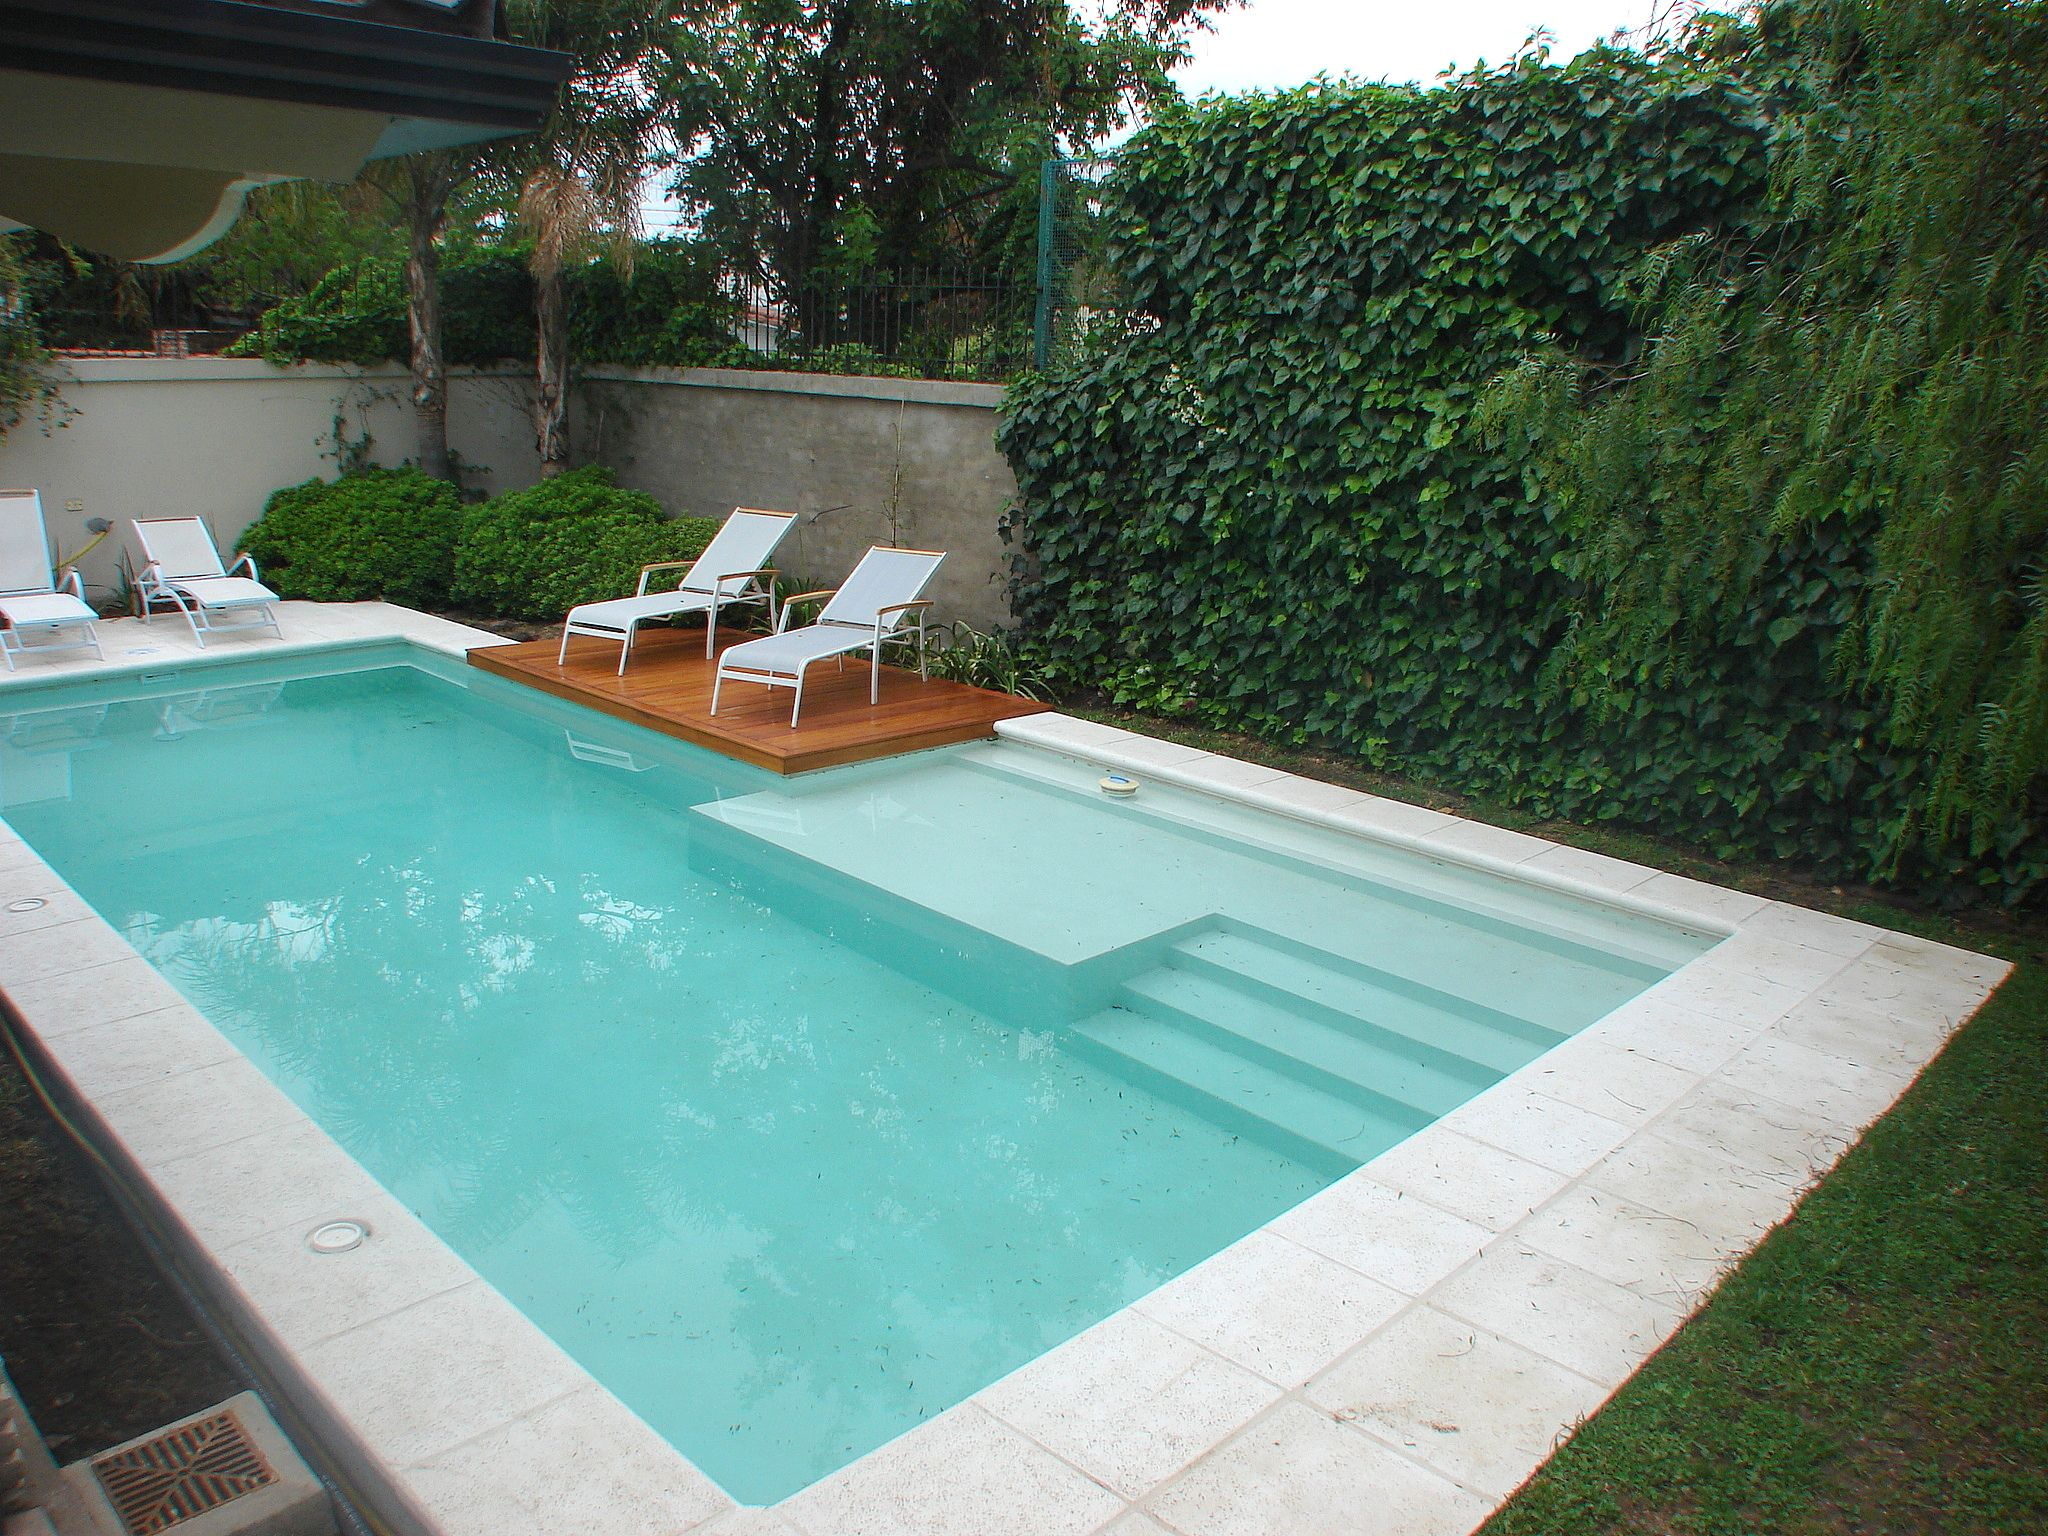 Piscina familiar swimmingpool deck de madera for Imagenes de jardines con alberca